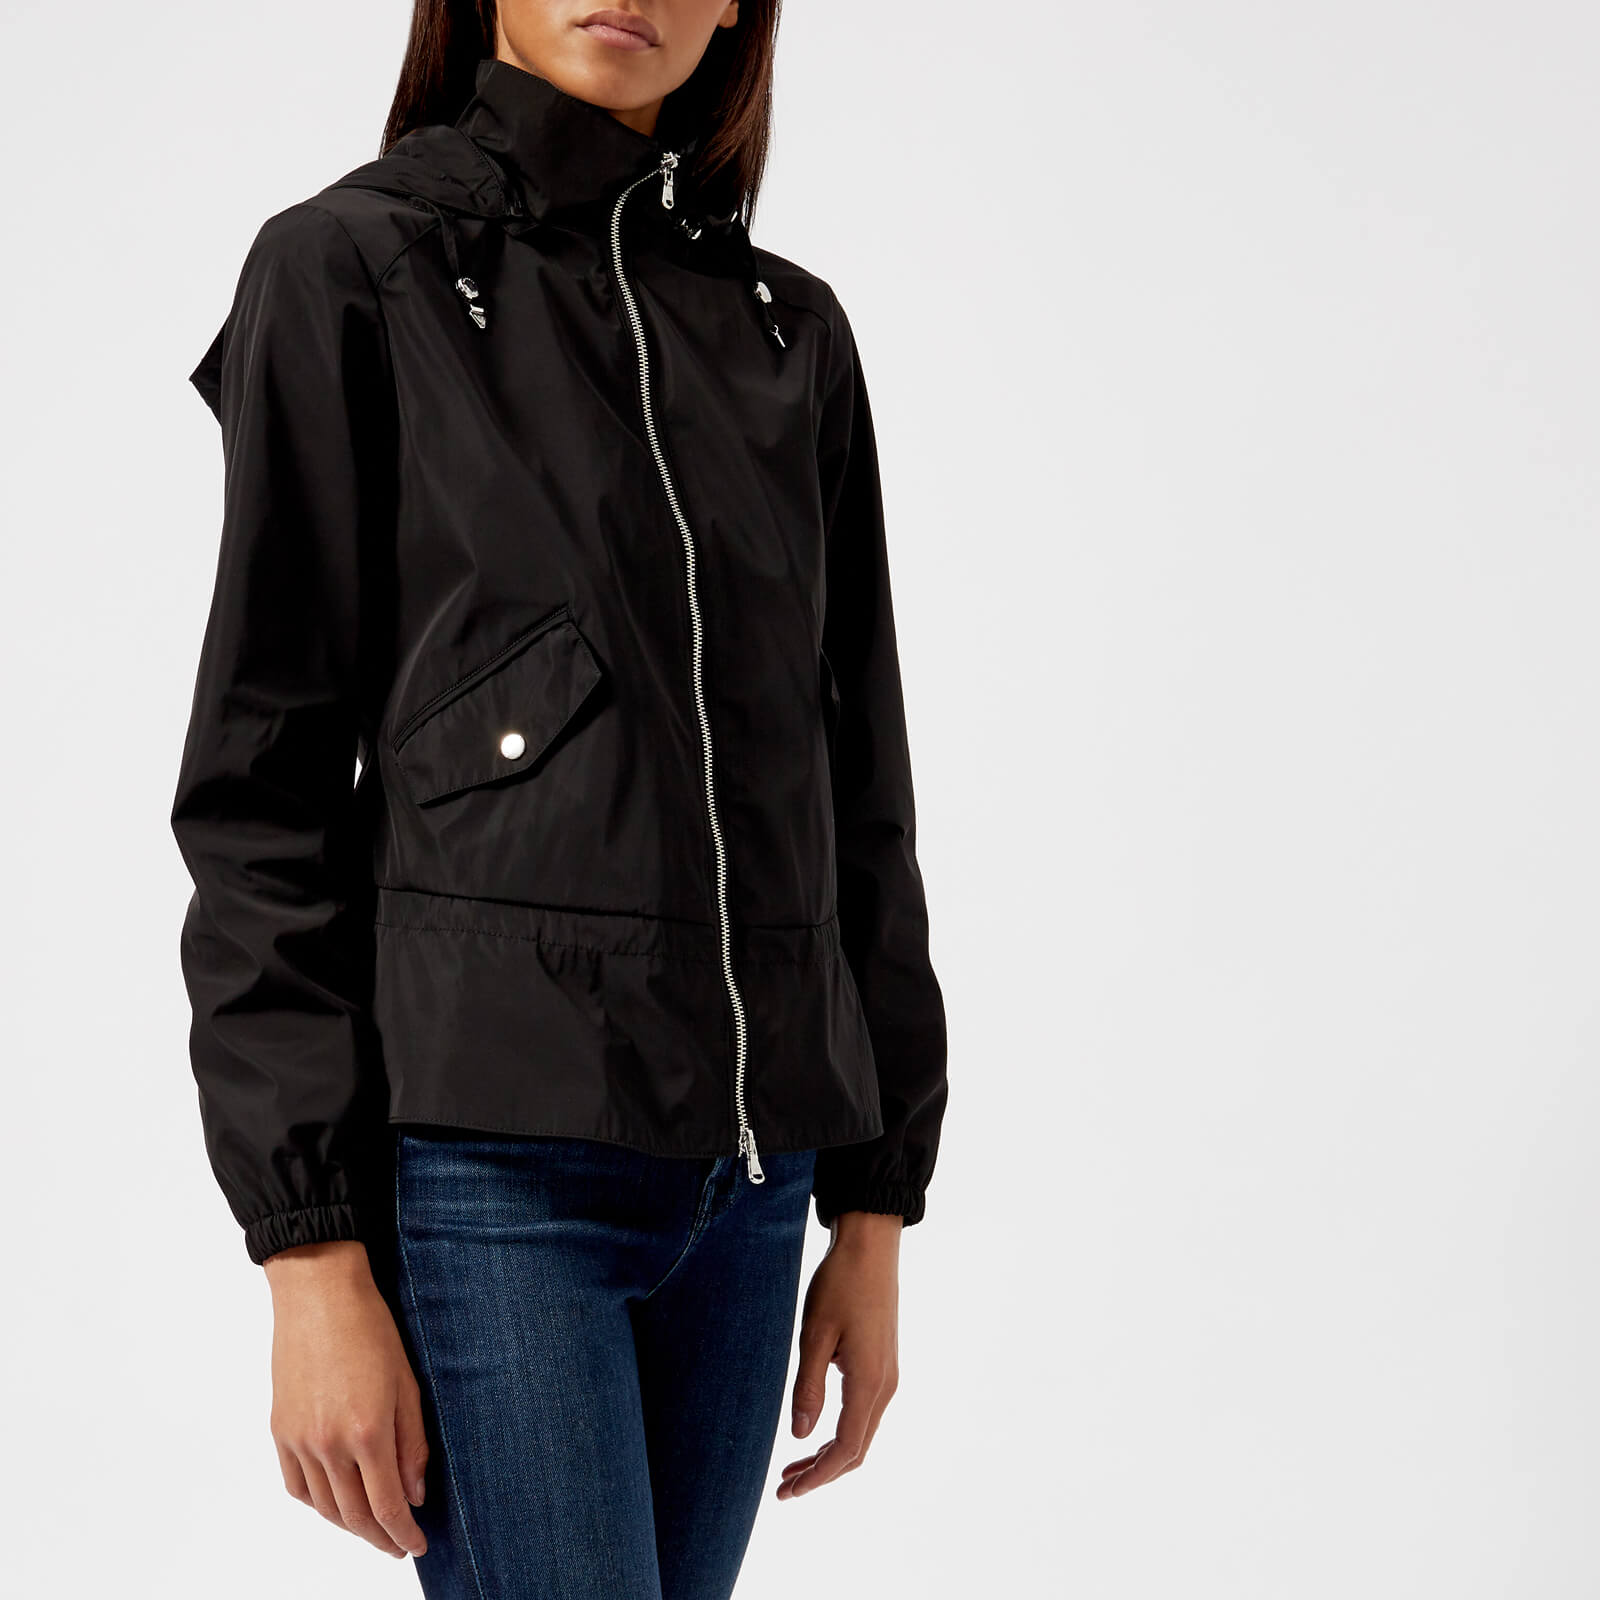 4c763b5b Emporio Armani Women's Blouson Hooded Jacket - Black